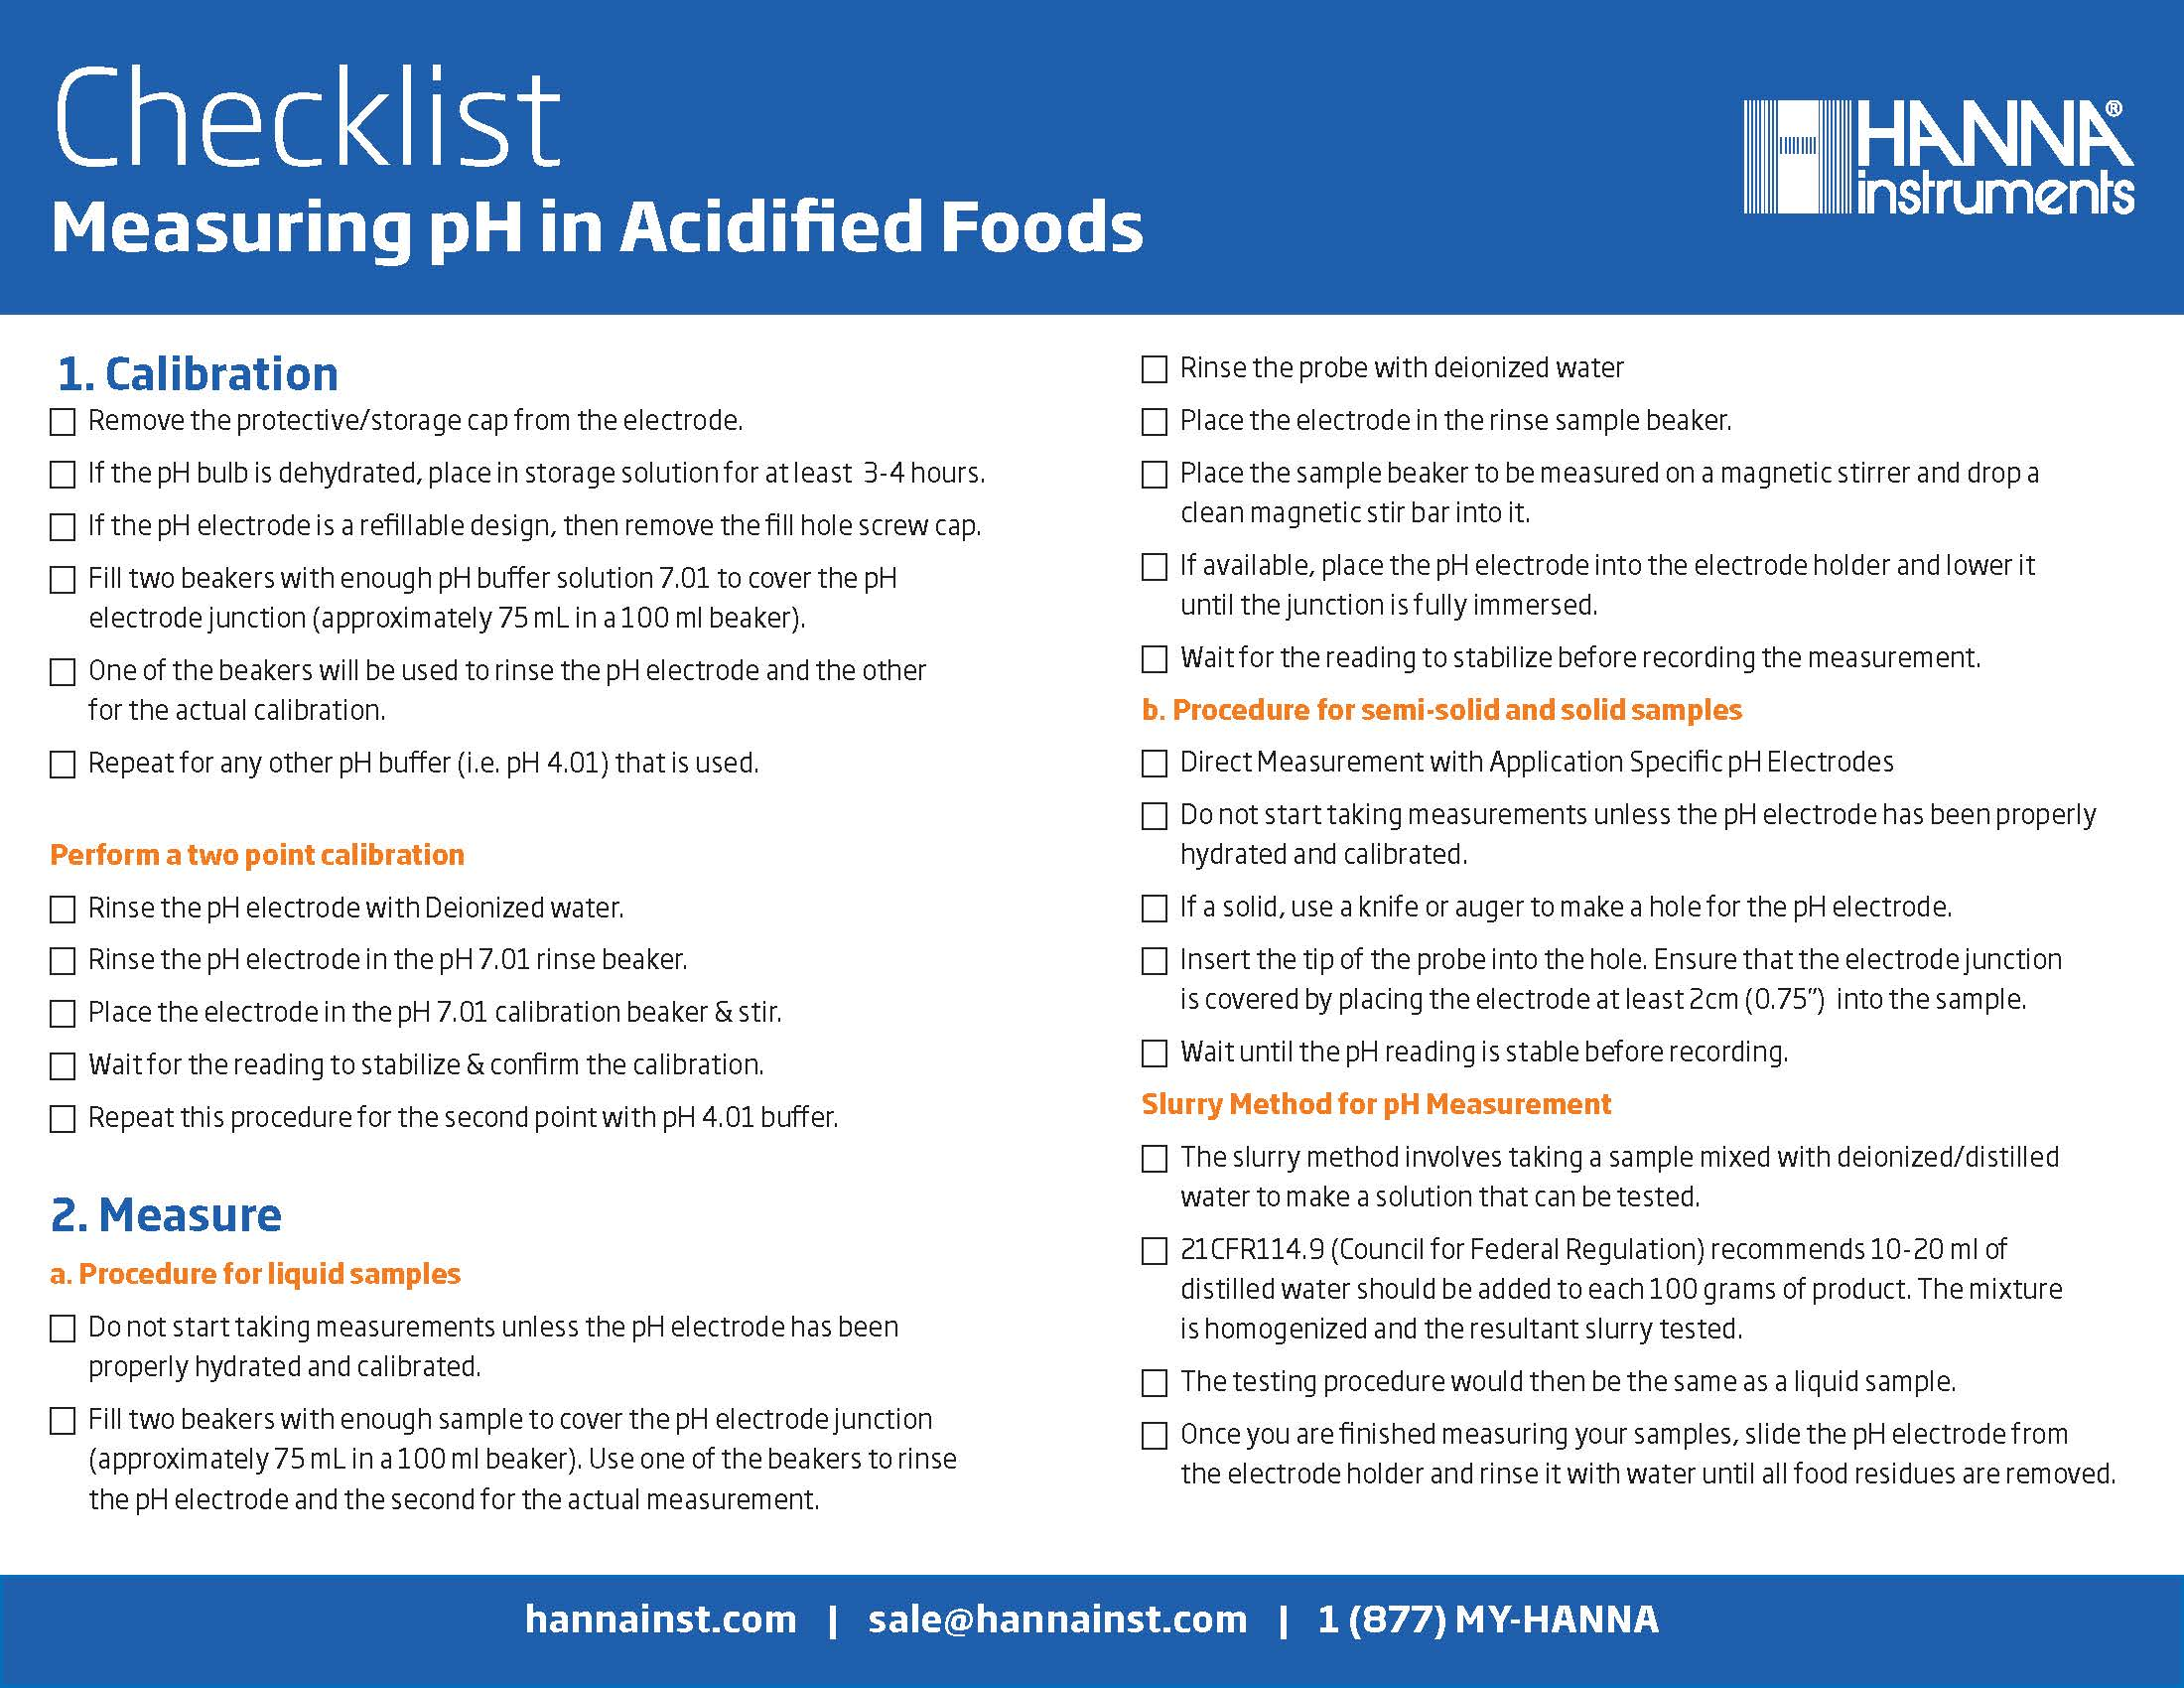 Hanna Checklist Measuring pH in Acidified Foods